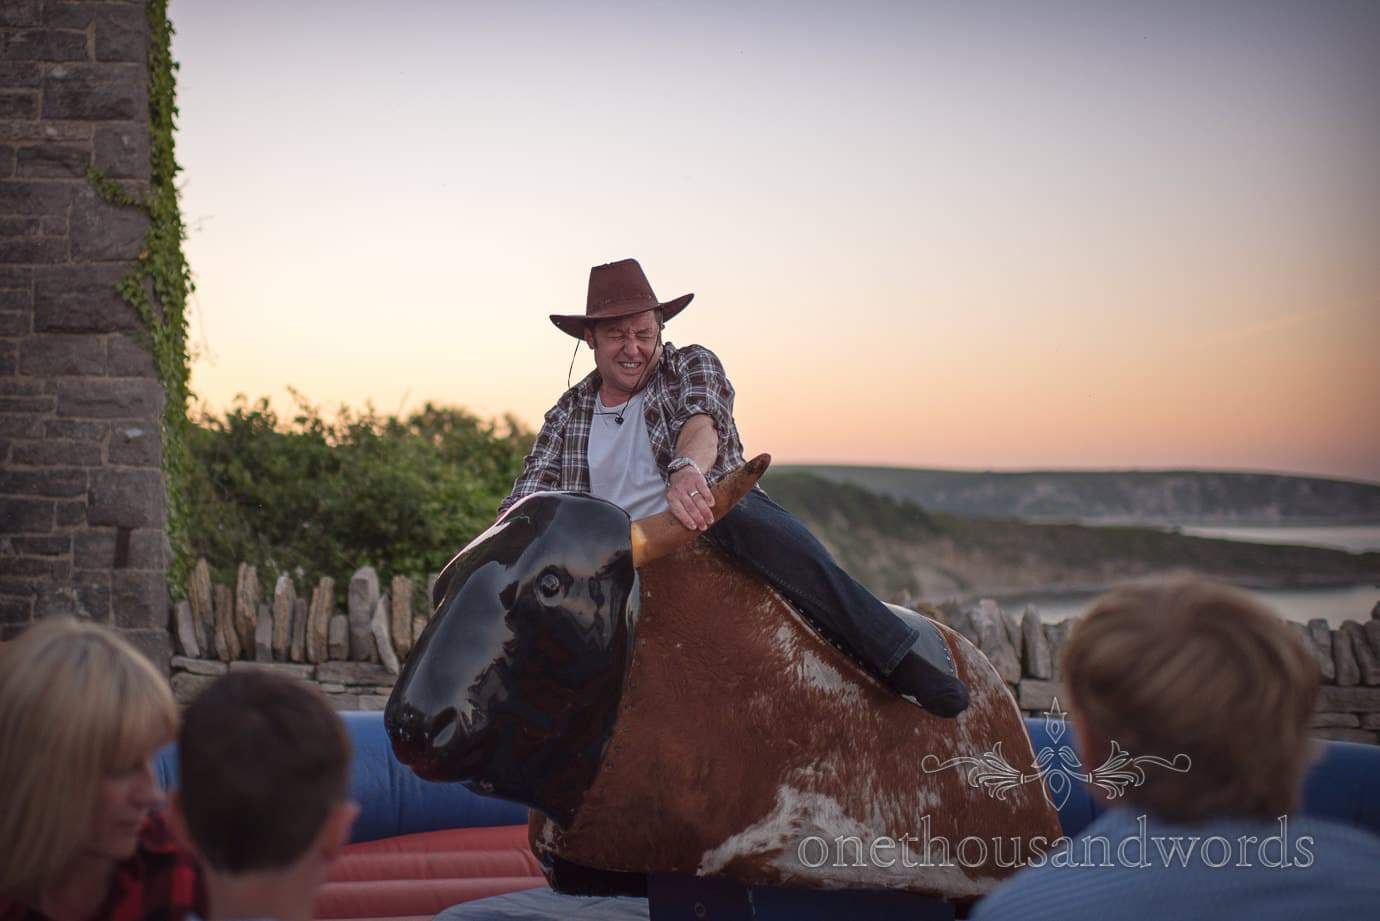 Wedding bucking bronco with sunset at Durlston Castle wedding venue